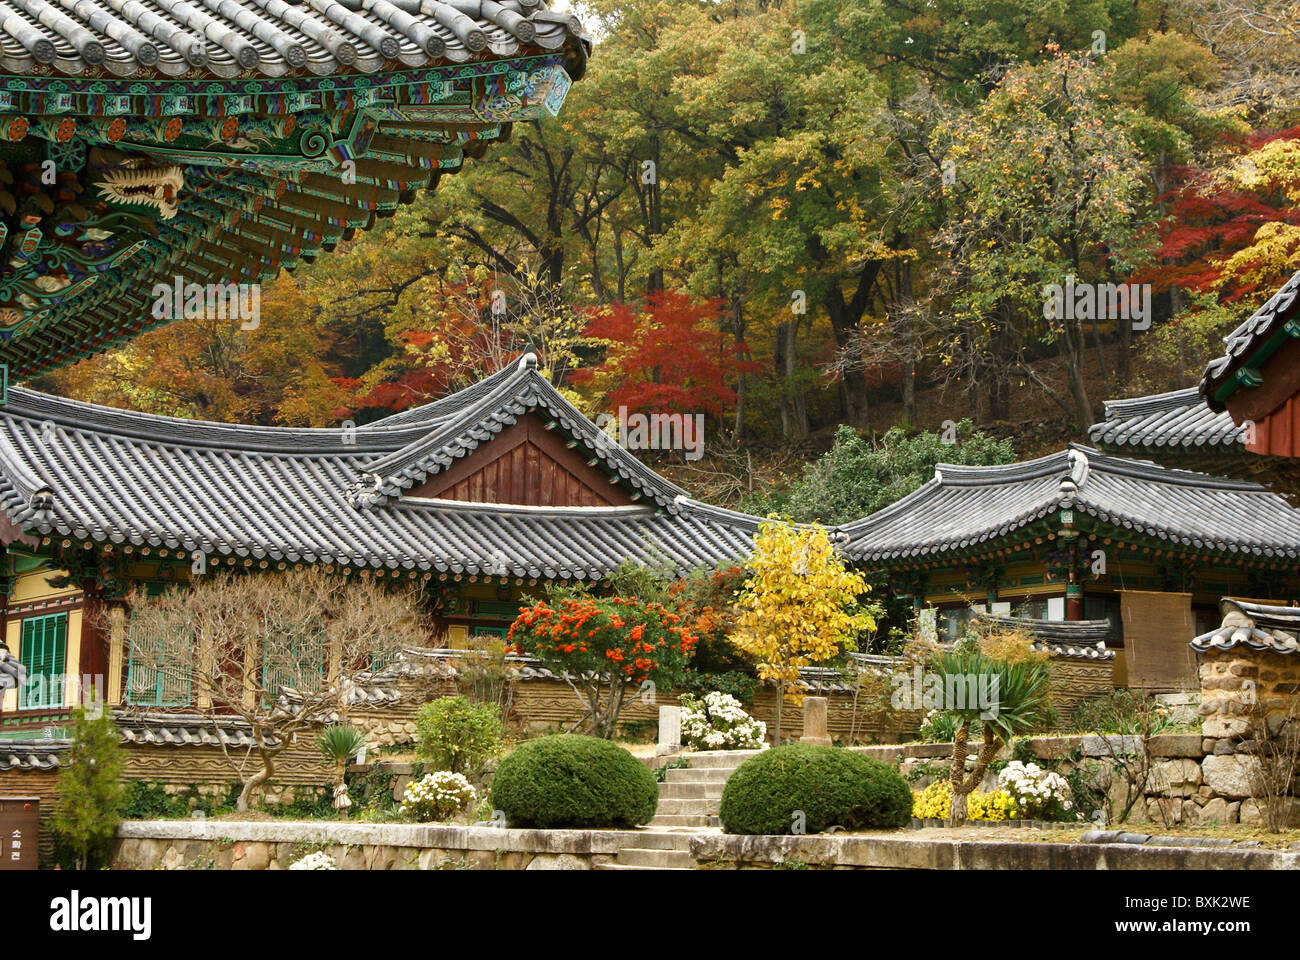 Seonamsa Buddhist temple, Suncheon, South Korea Stock Photo ...